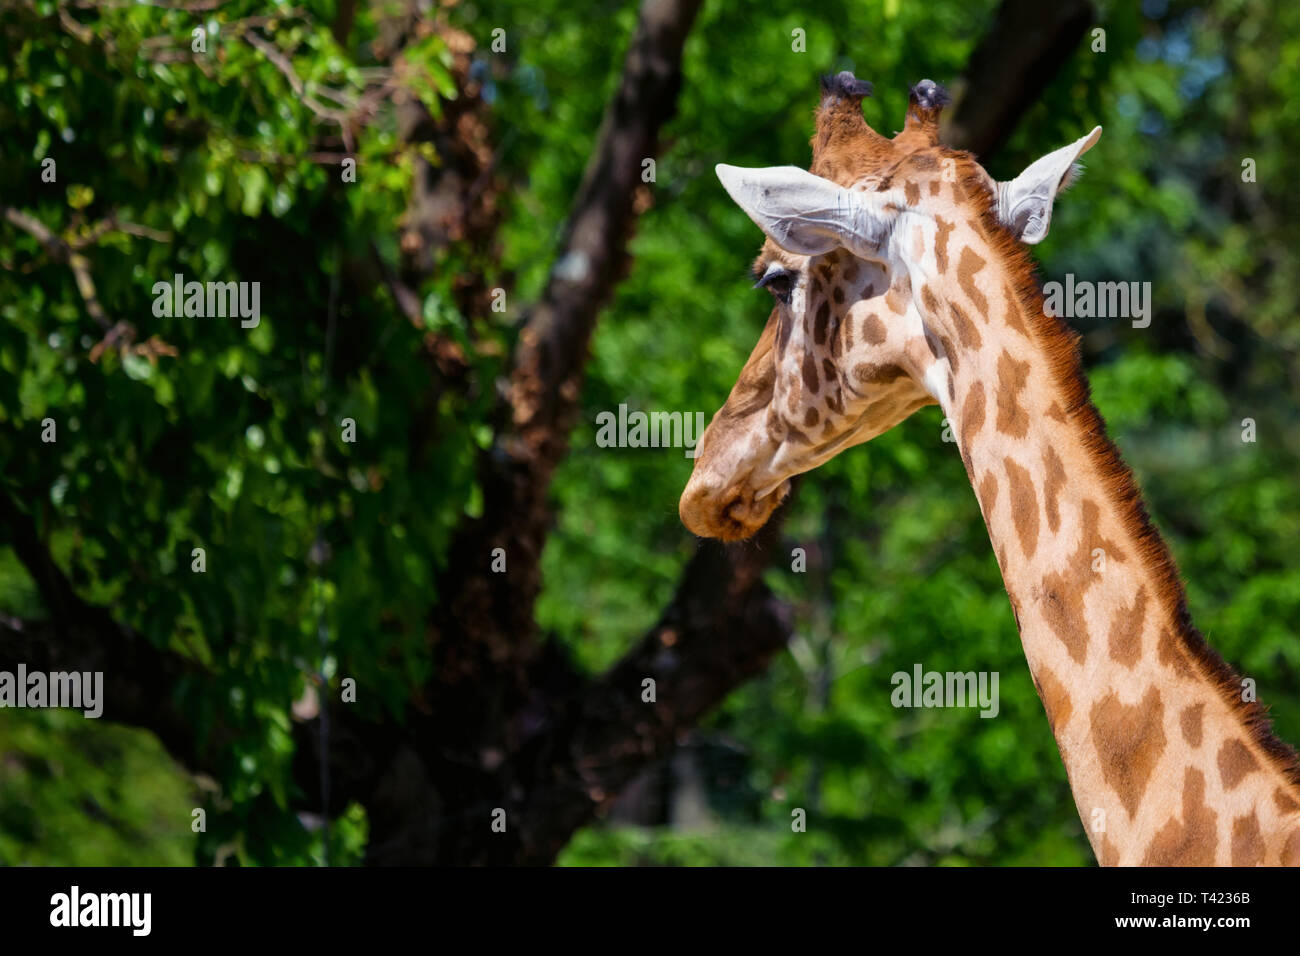 Close up head of Kordofan giraffe or camelopardalis antiquorum - Stock Image